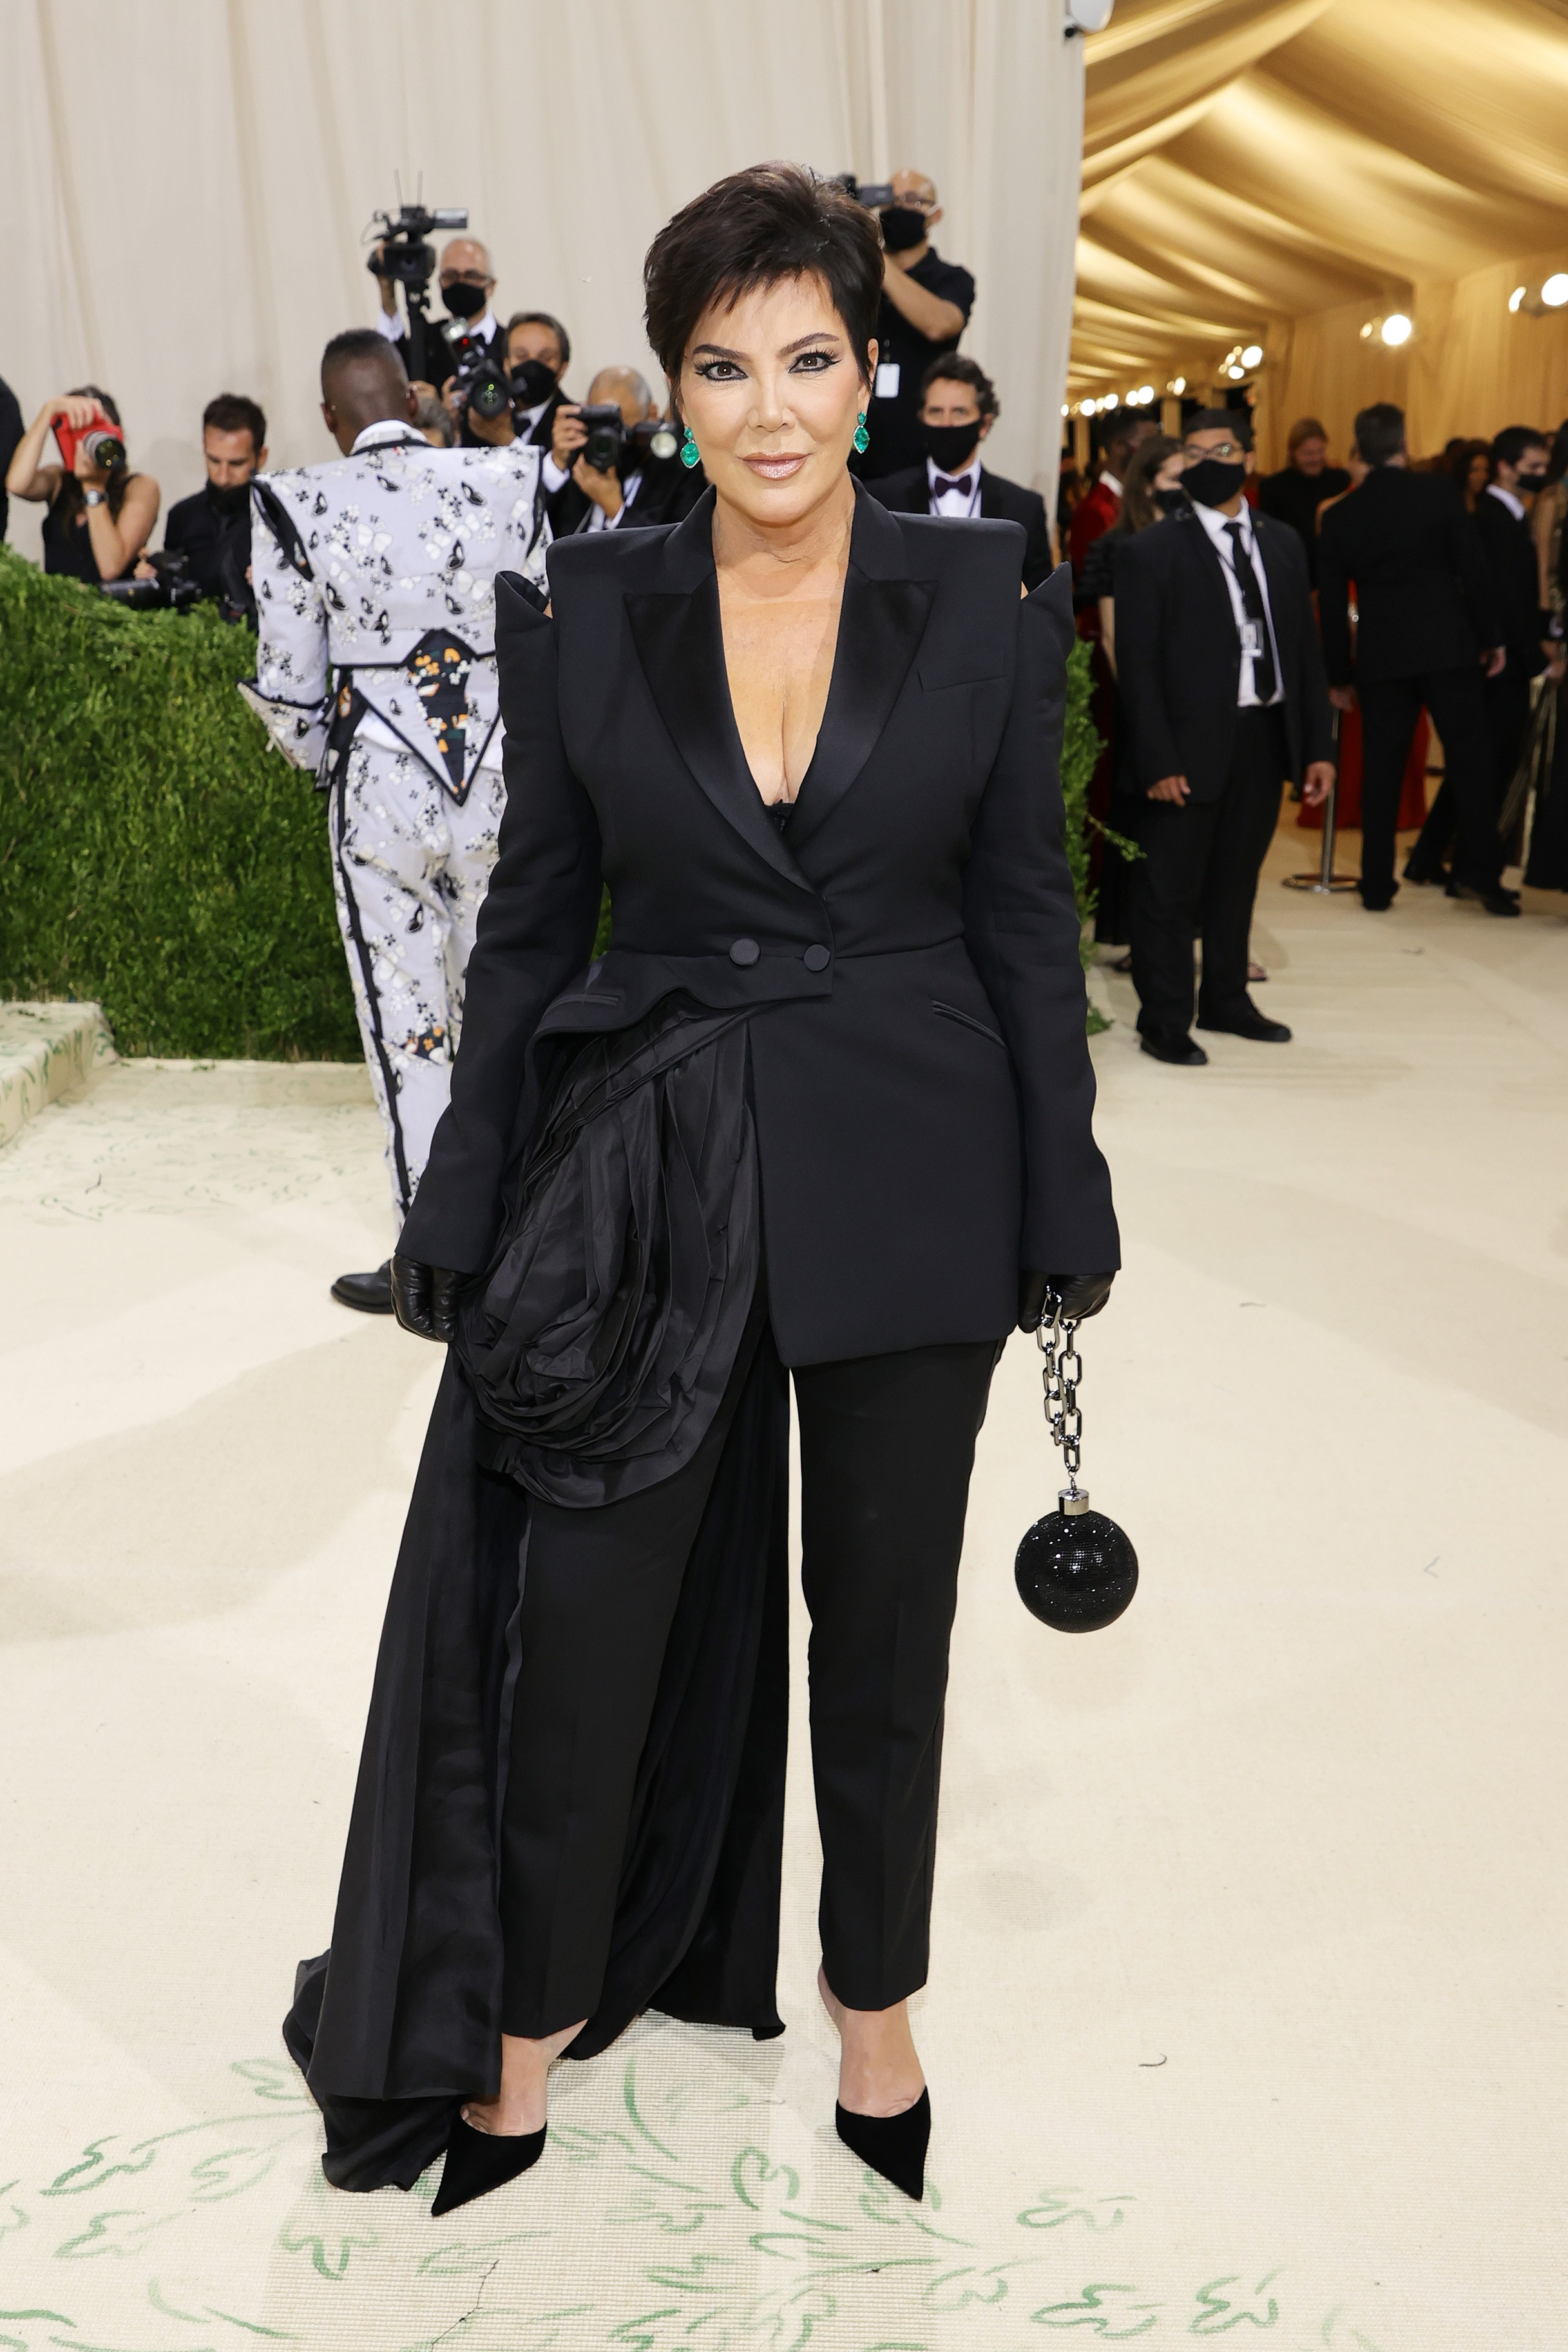 NEW YORK, NEW YORK - SEPTEMBER 13: Kris Jenner attends The 2021 Met Gala Celebrating In America: A Lexicon Of Fashion at Metropolitan Museum of Art on September 13, 2021 in New York City. (Photo by Mike Coppola/Getty Images) (Foto: Getty Images)